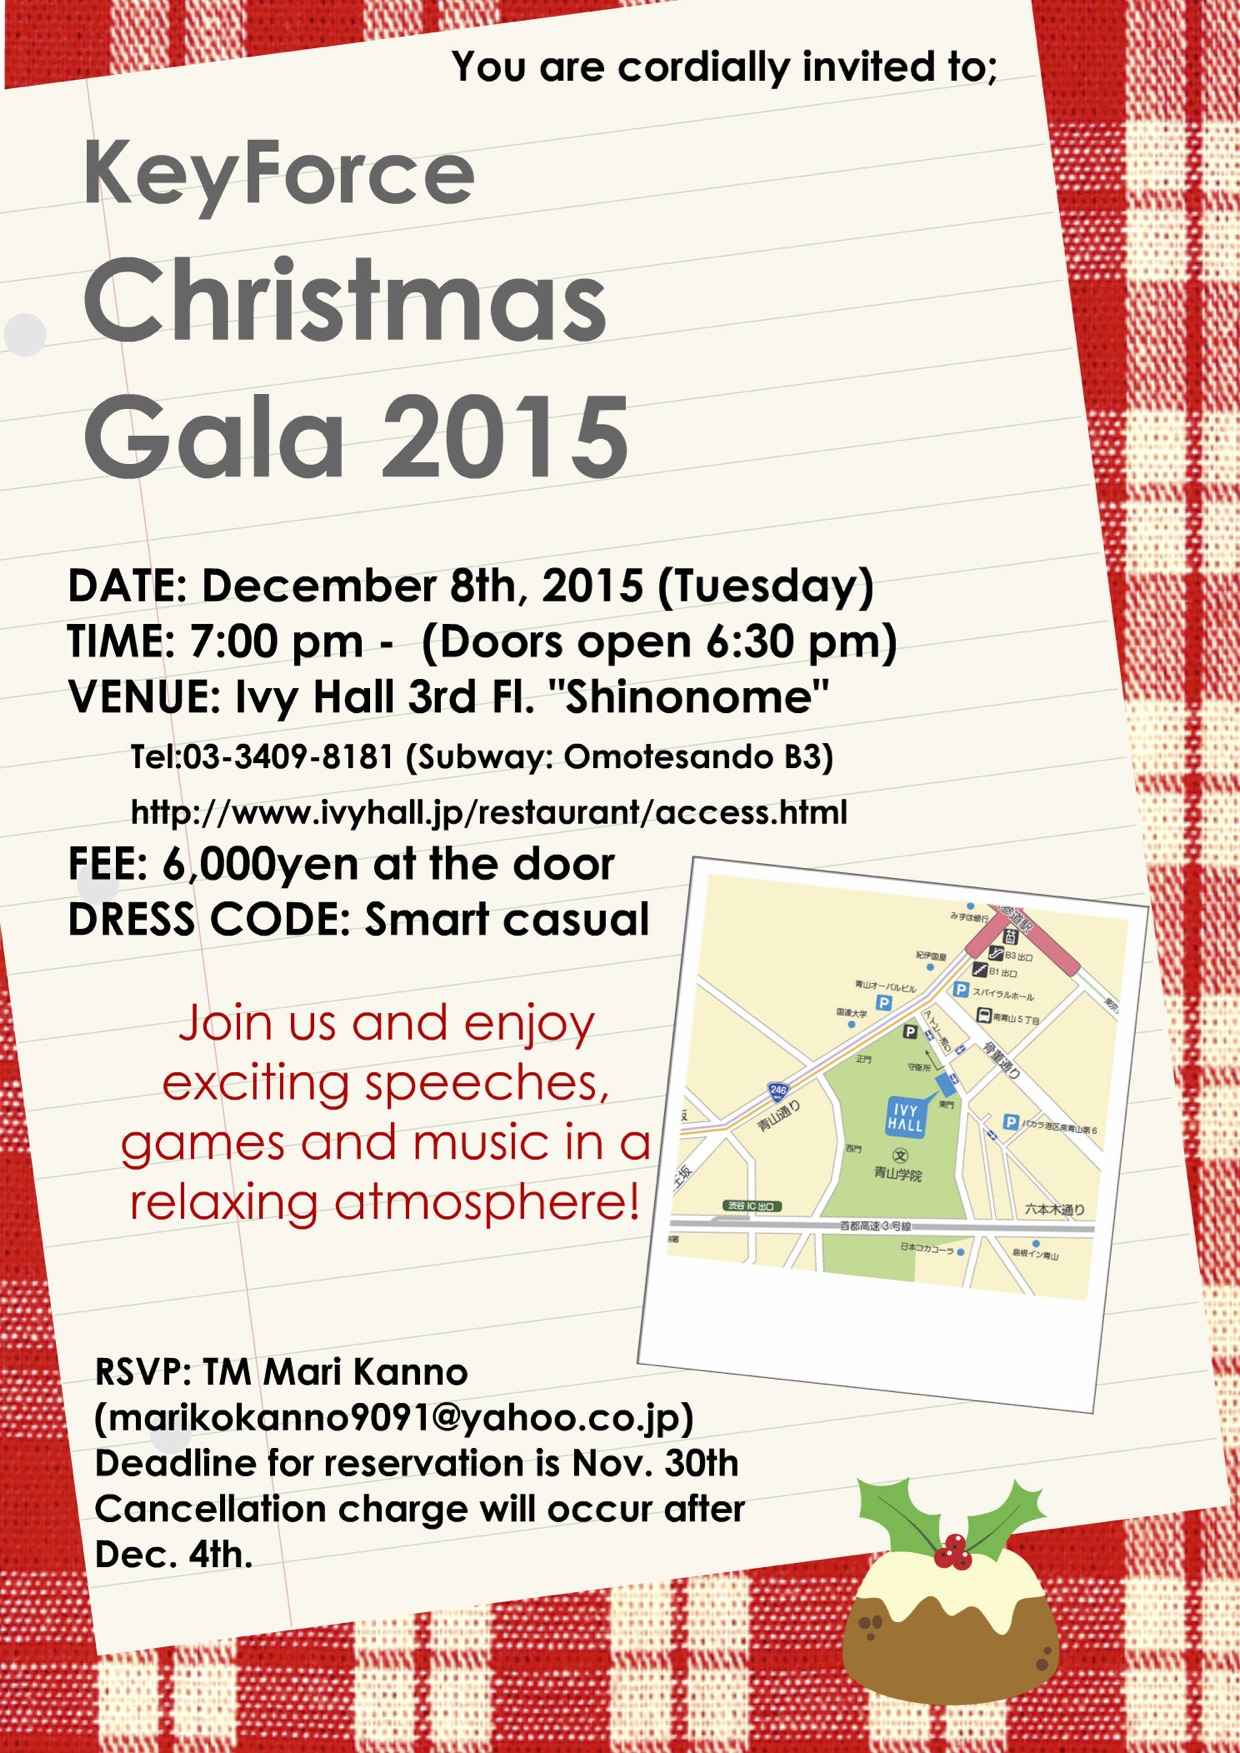 Rev. KF ChristmasGala Flyer2015